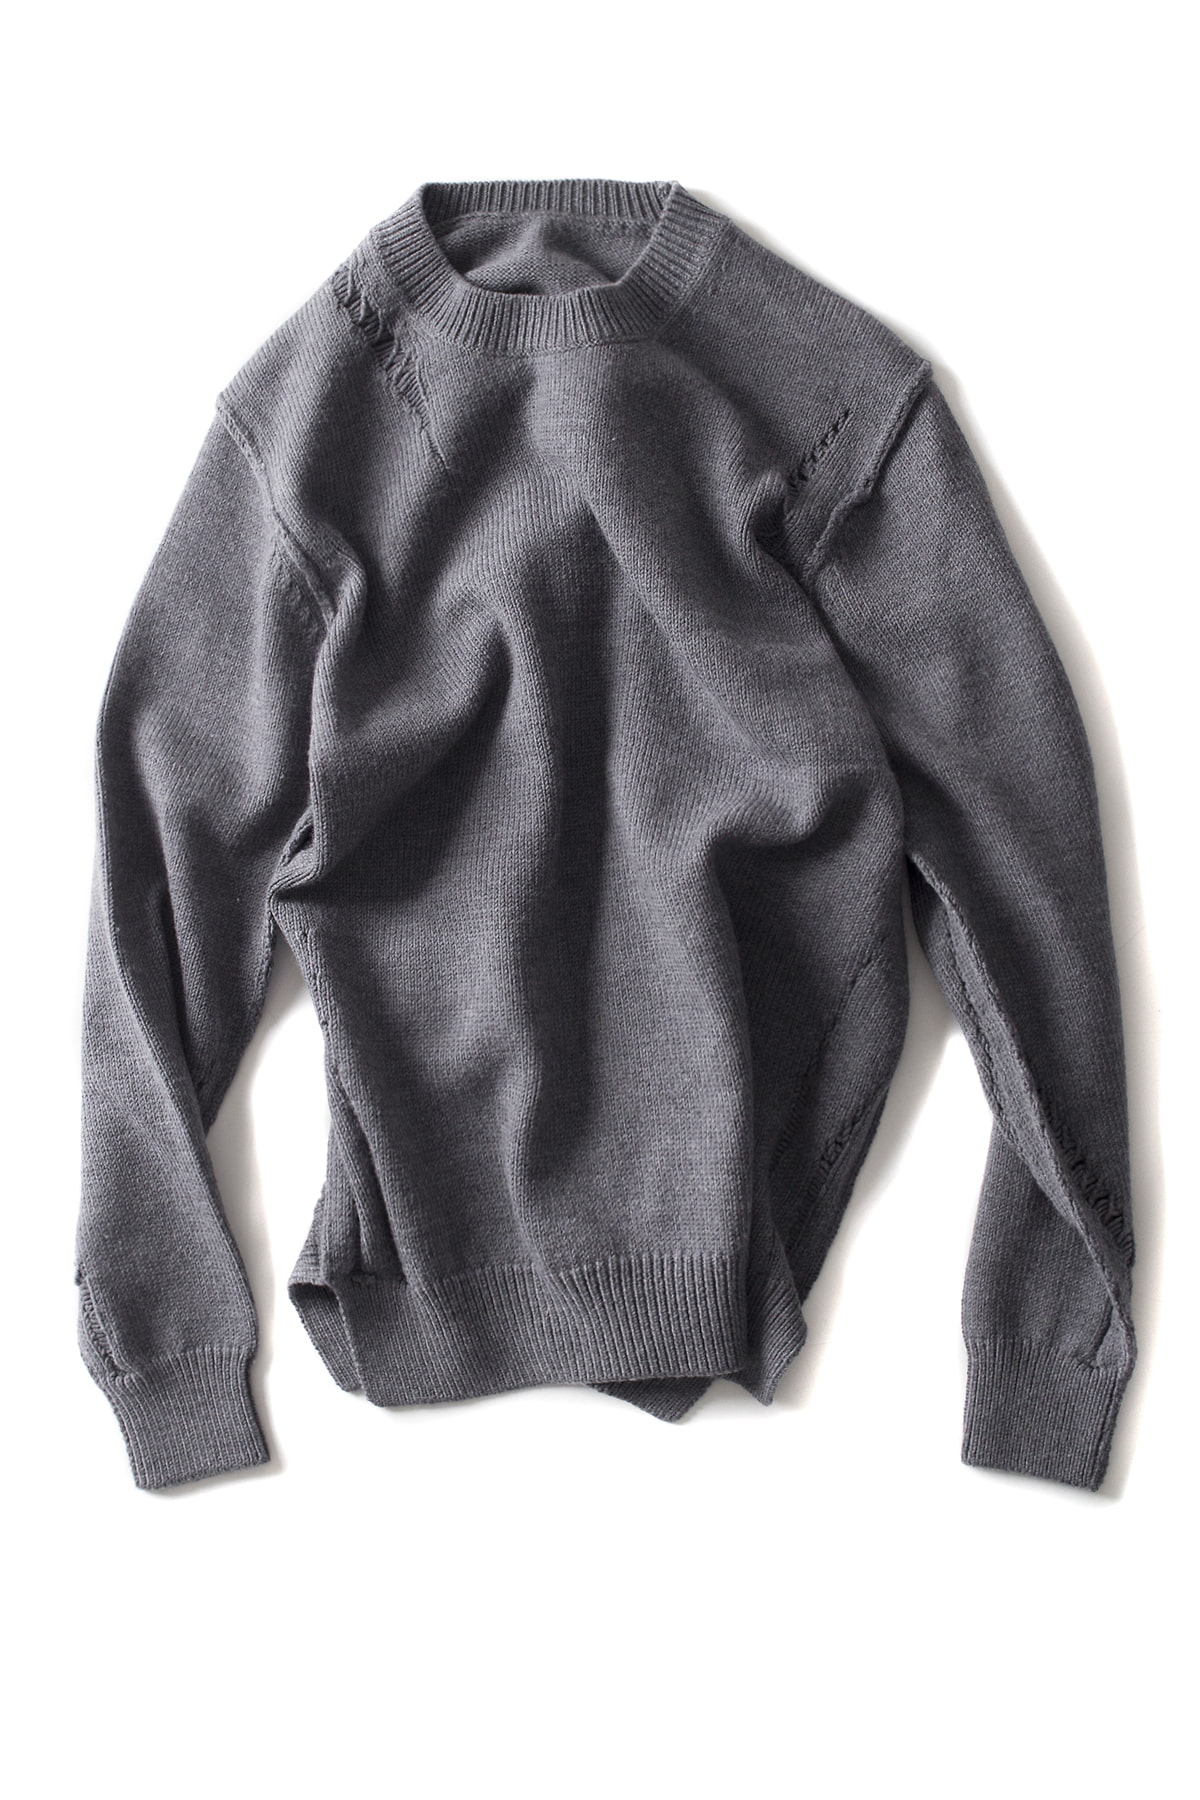 ATTACHMENT / KAZYUKI KUMAGAI : Wool Cord Crewneck Pullover (Grey)